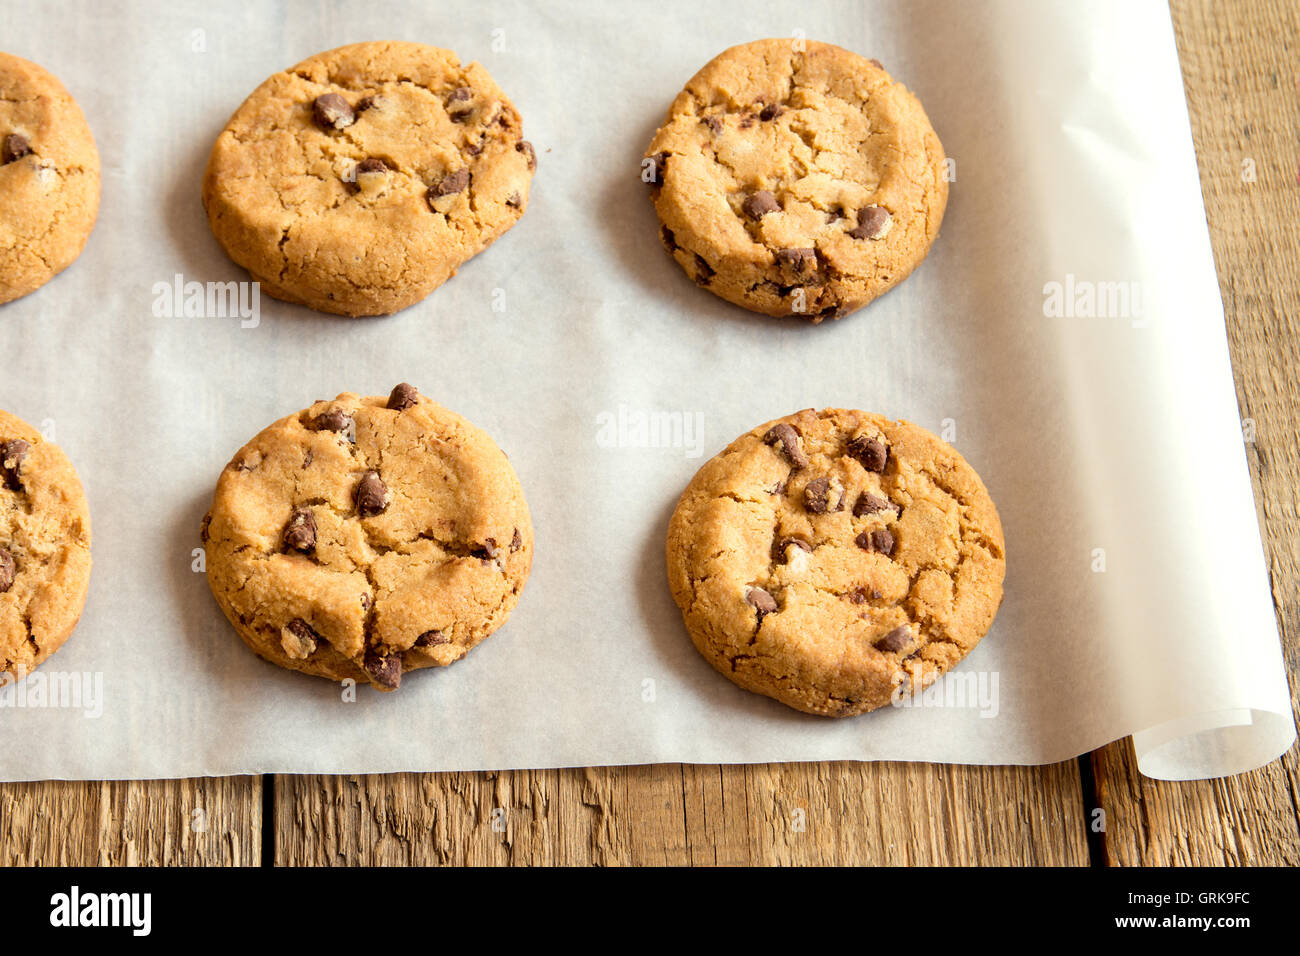 Chocolate chip cookies on baking paper and rustic wooden table Stock Photo